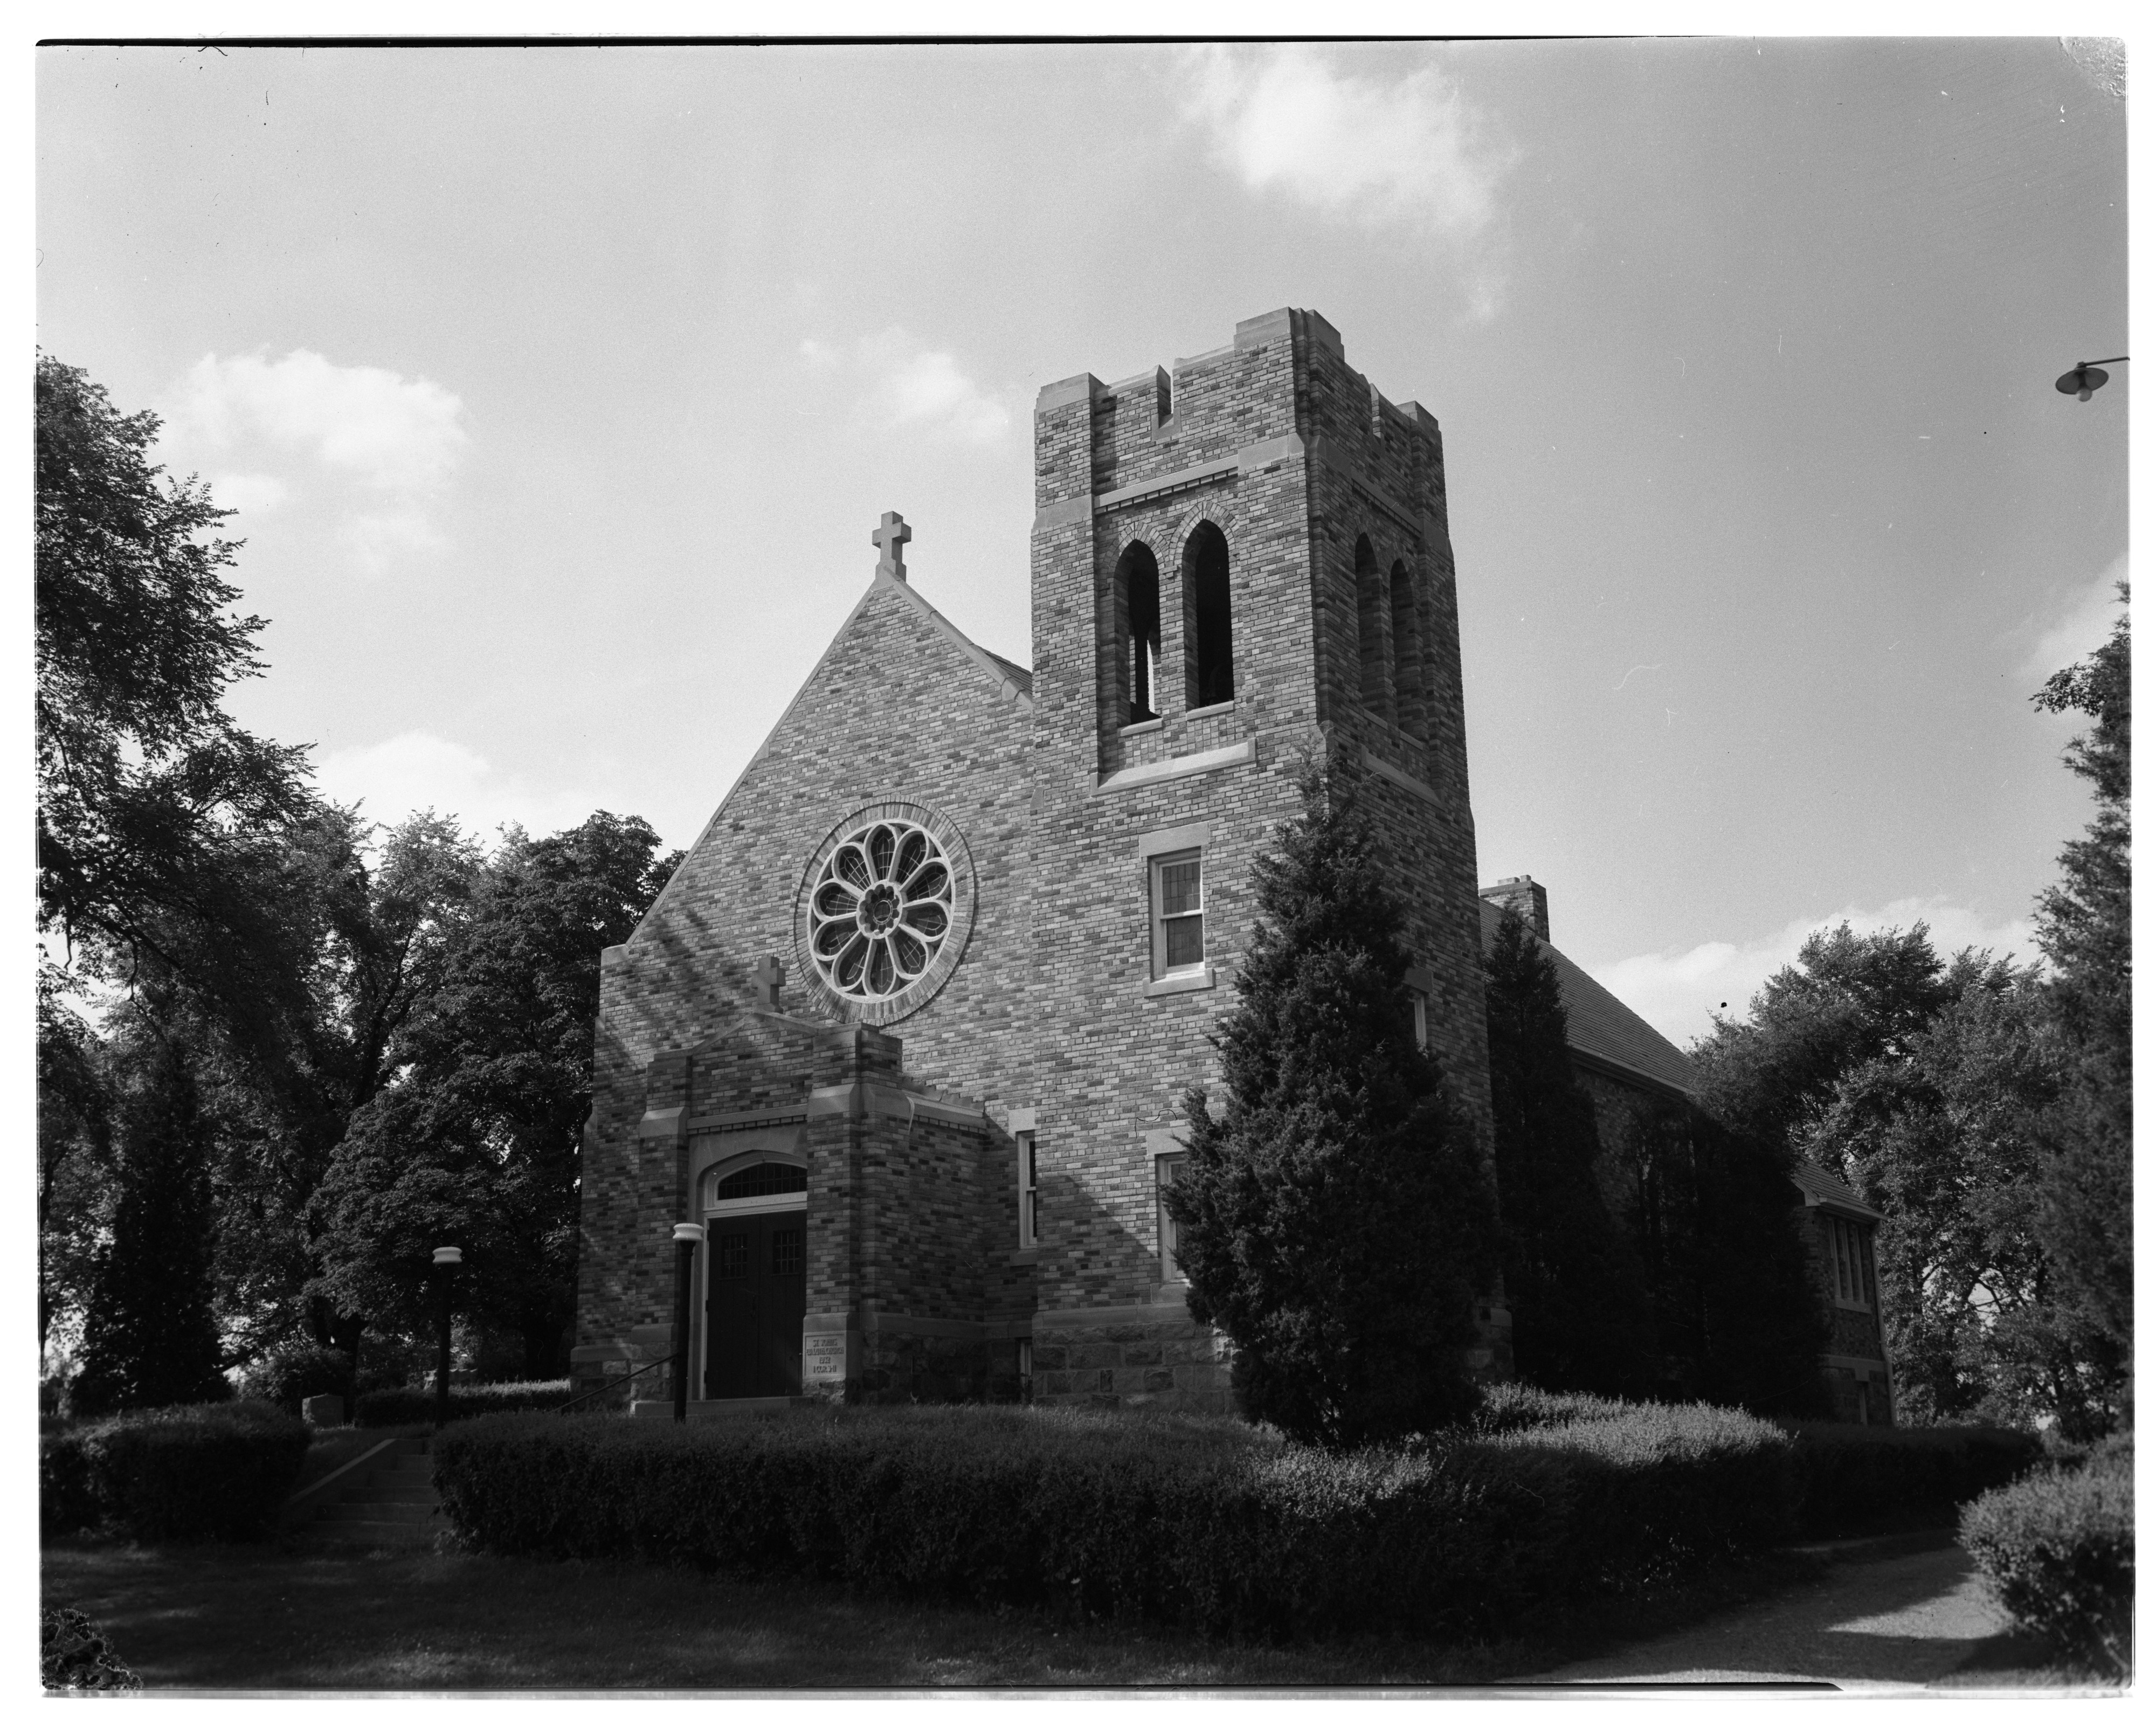 Aerial Photograph of St. John's Evangelical Lutheran Church, Northfield Township, September 1956 image